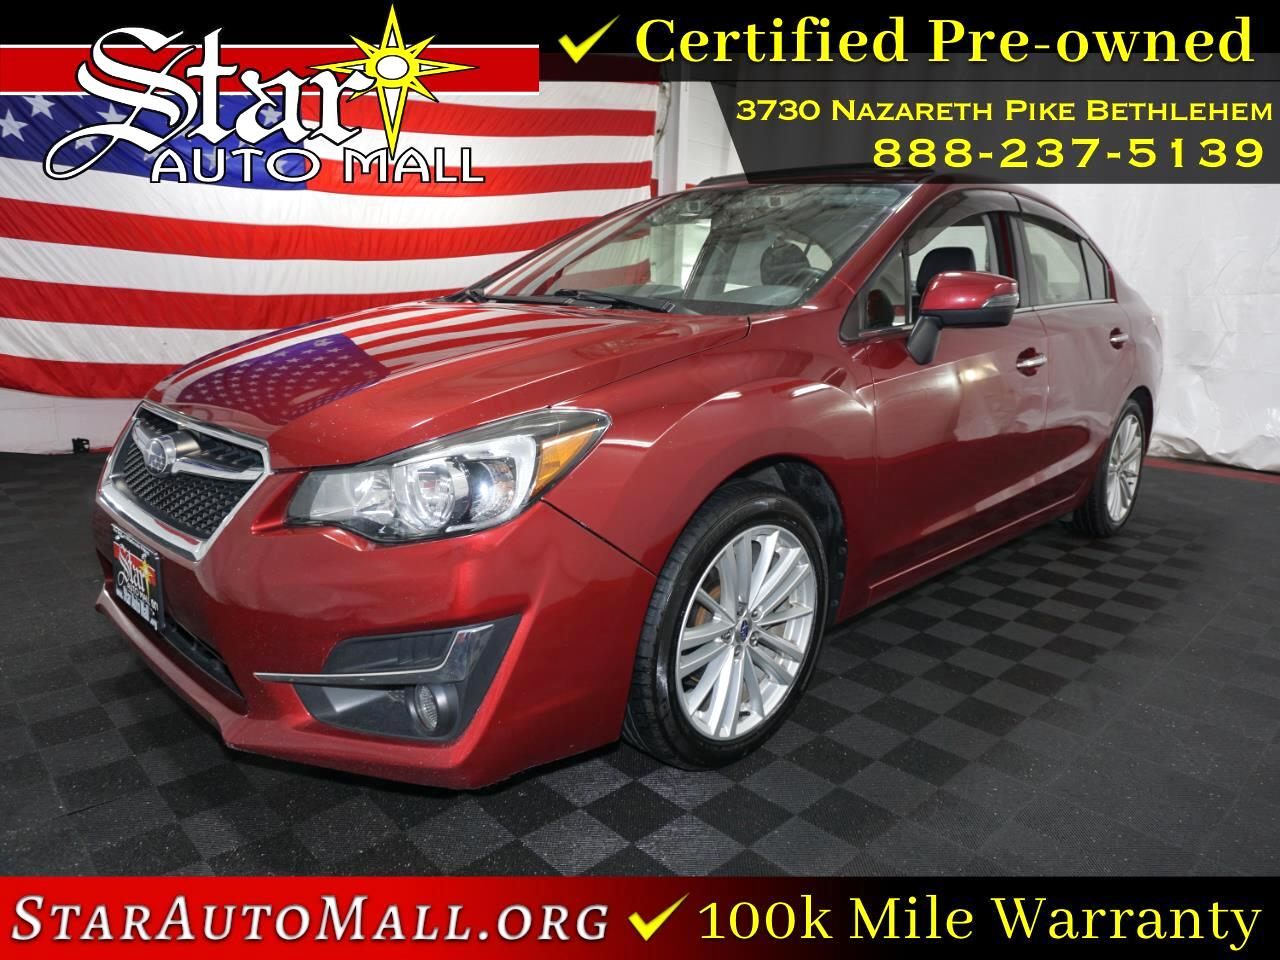 2016 Subaru Impreza 2.0i Limited 4-door CVT